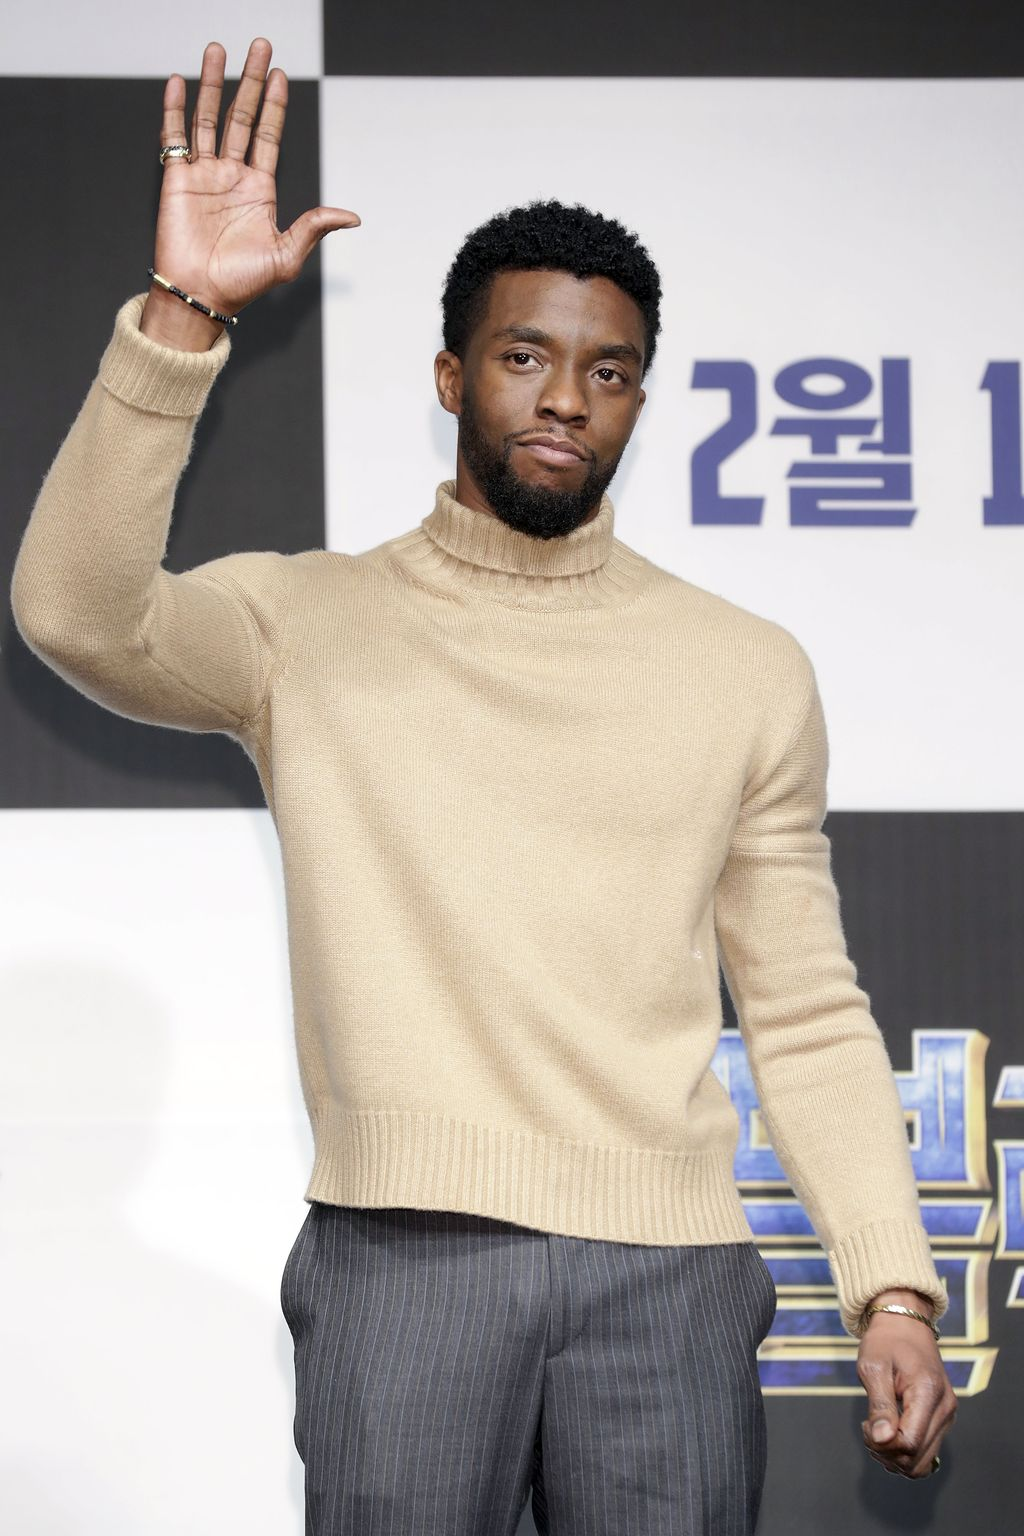 SEOUL, SOUTH KOREA - FEBRUARY 05:  Actor Chadwick Boseman attends the press conference for the Seoul premiere of 'Black Panther' on February 5, 2018 in Seoul, South Korea.  (Photo by Han Myung-Gu/Getty Images for Disney)